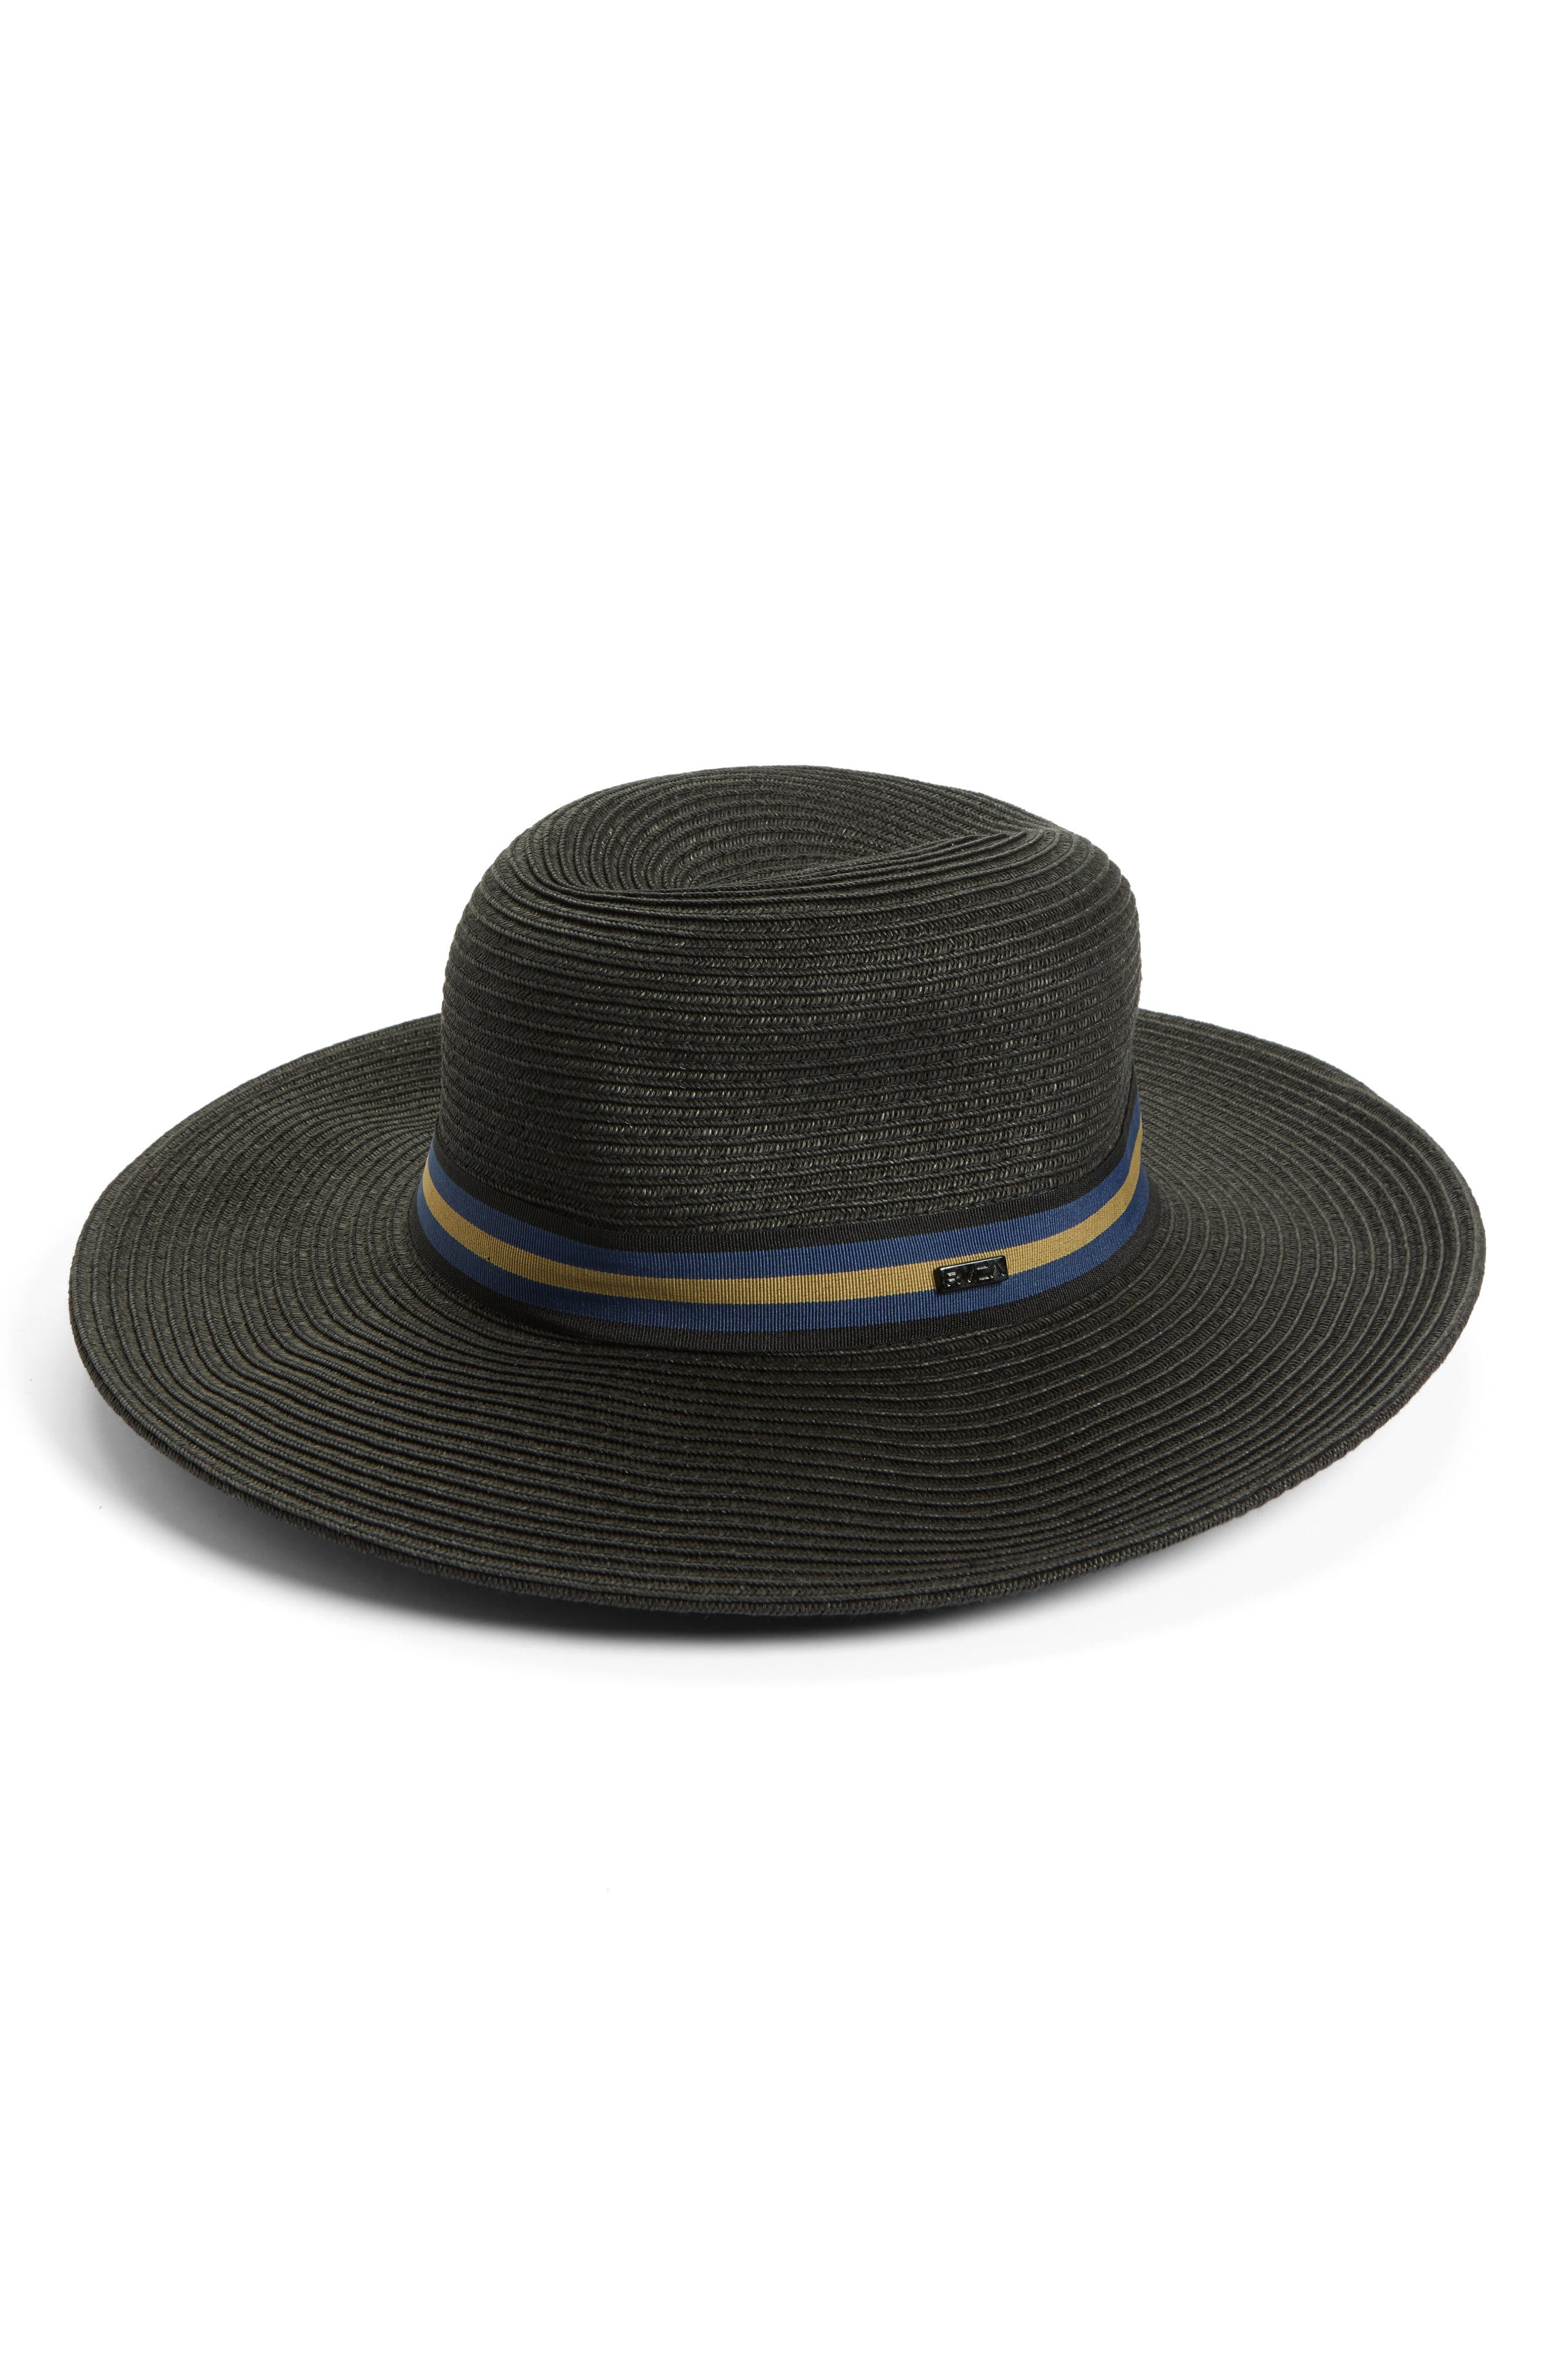 RVCA High Road Straw Boater Hat